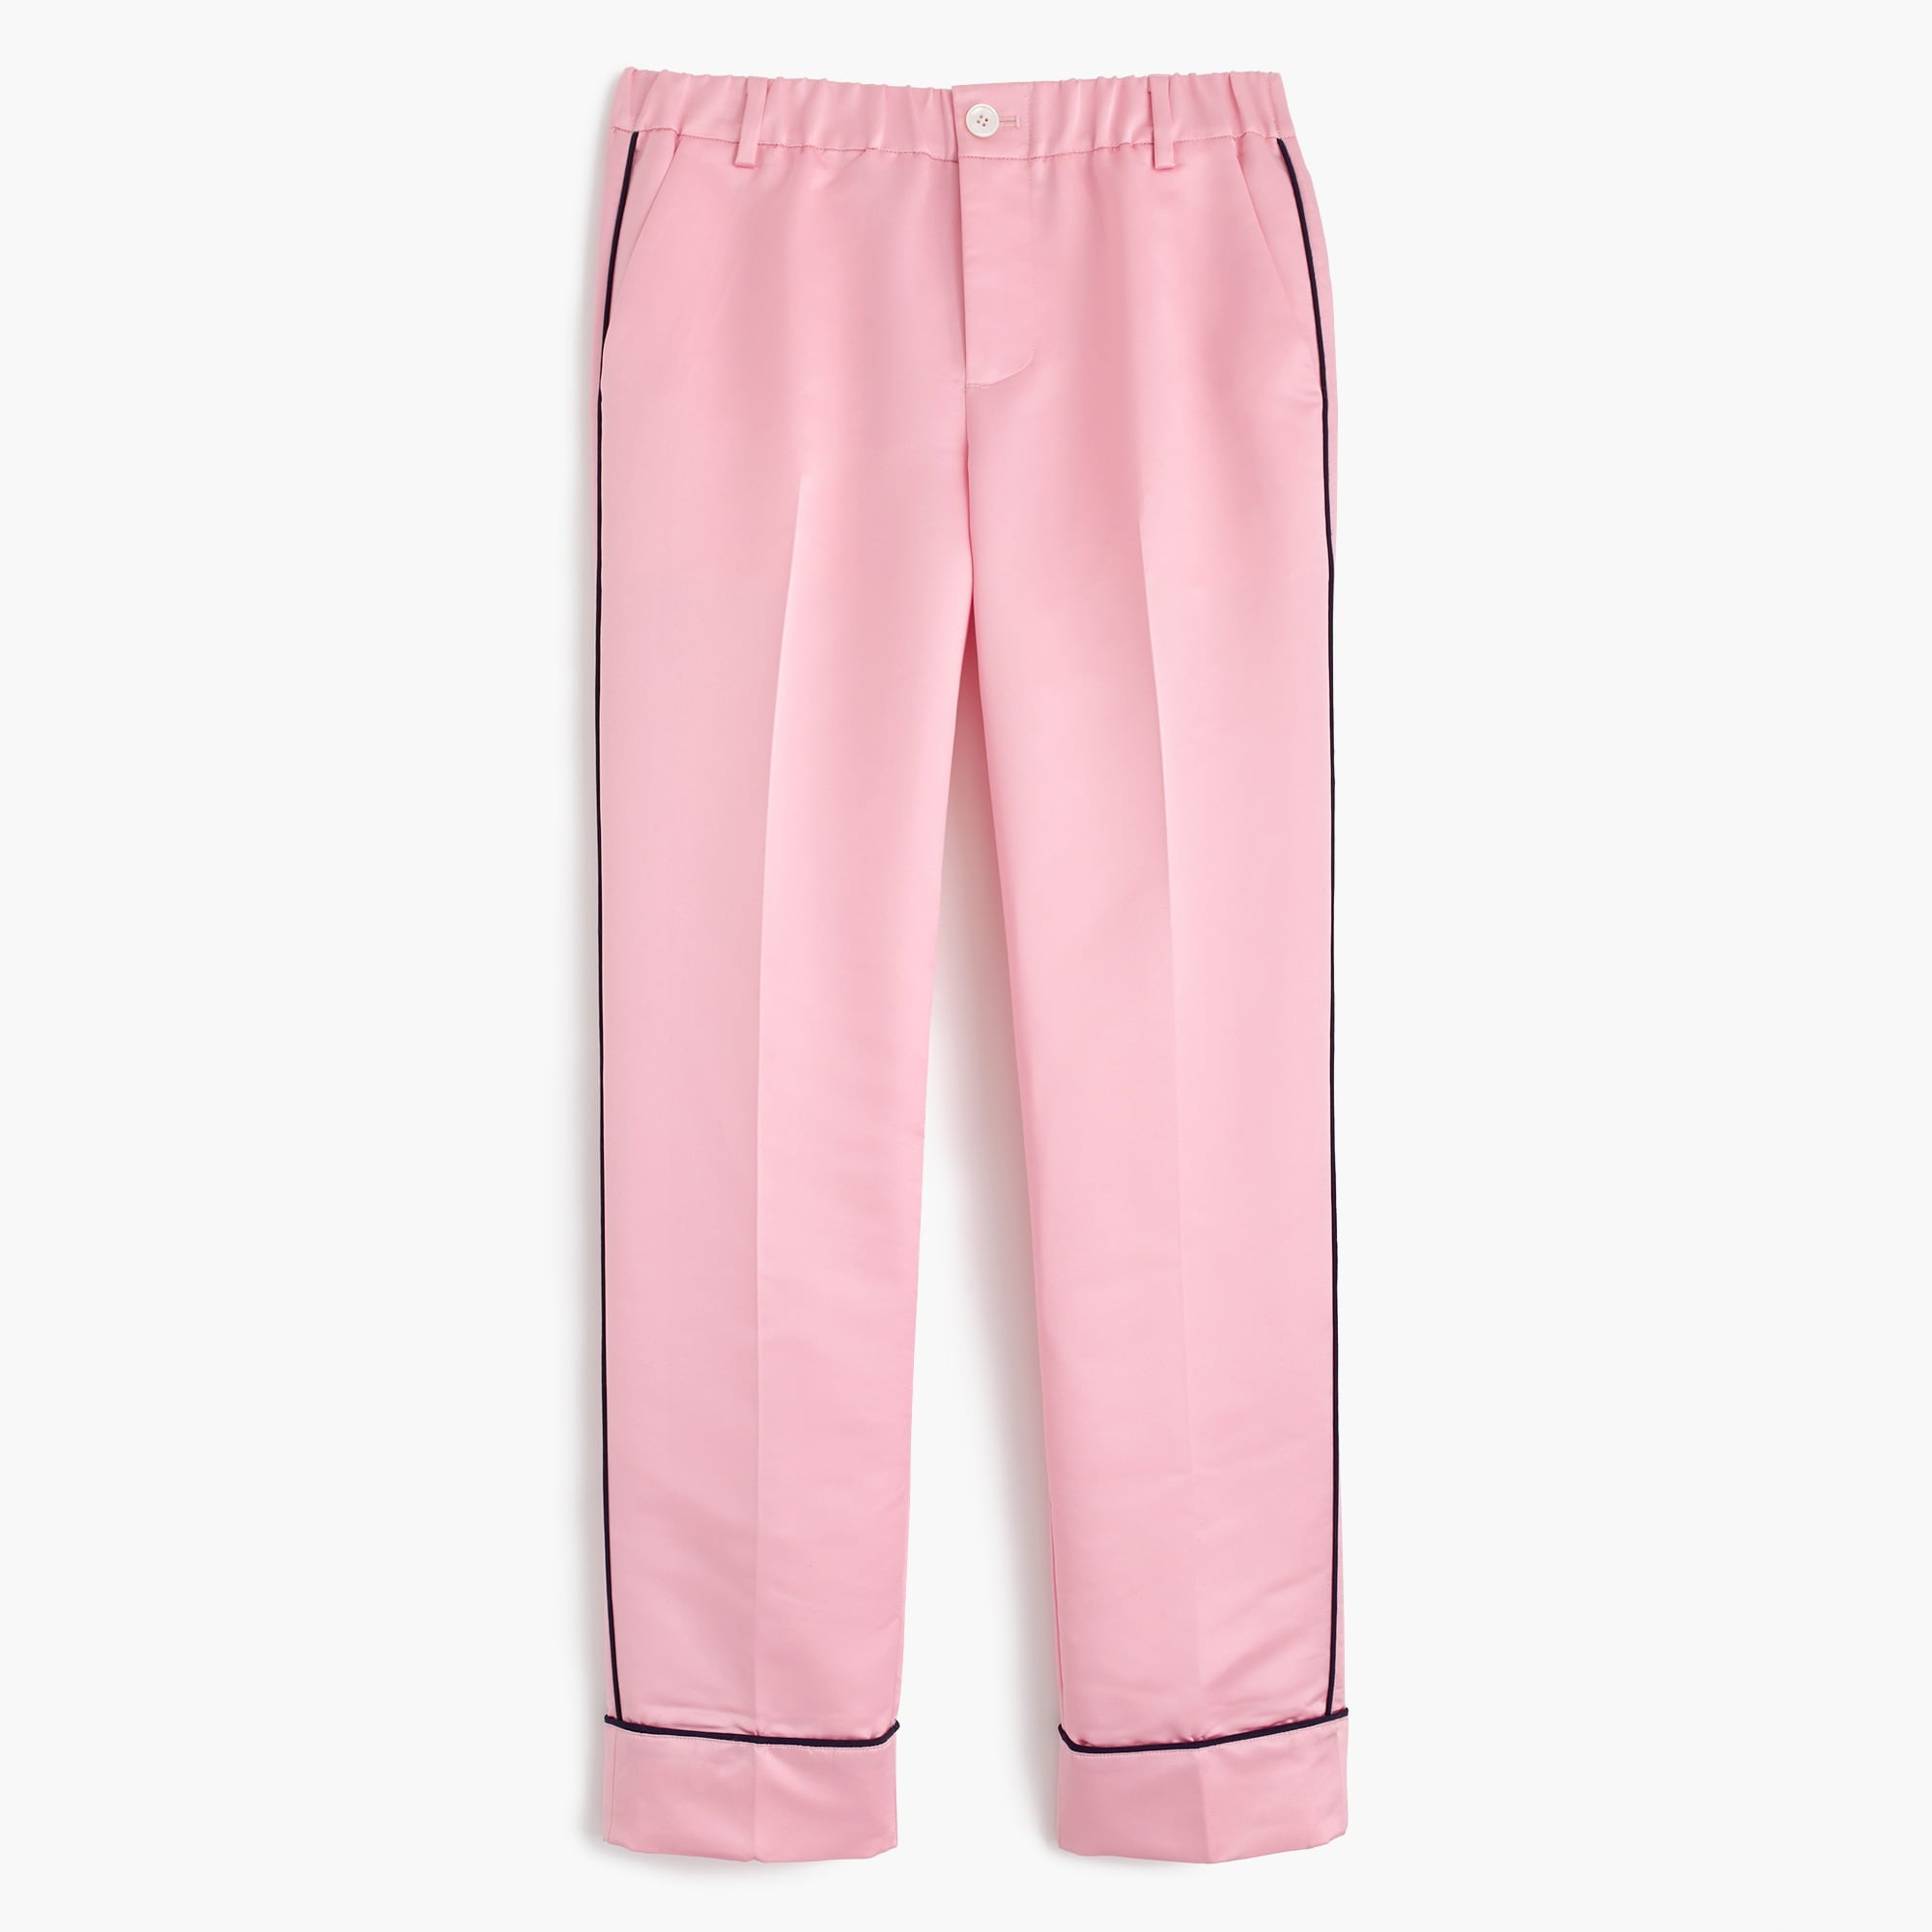 Satin pajama pants